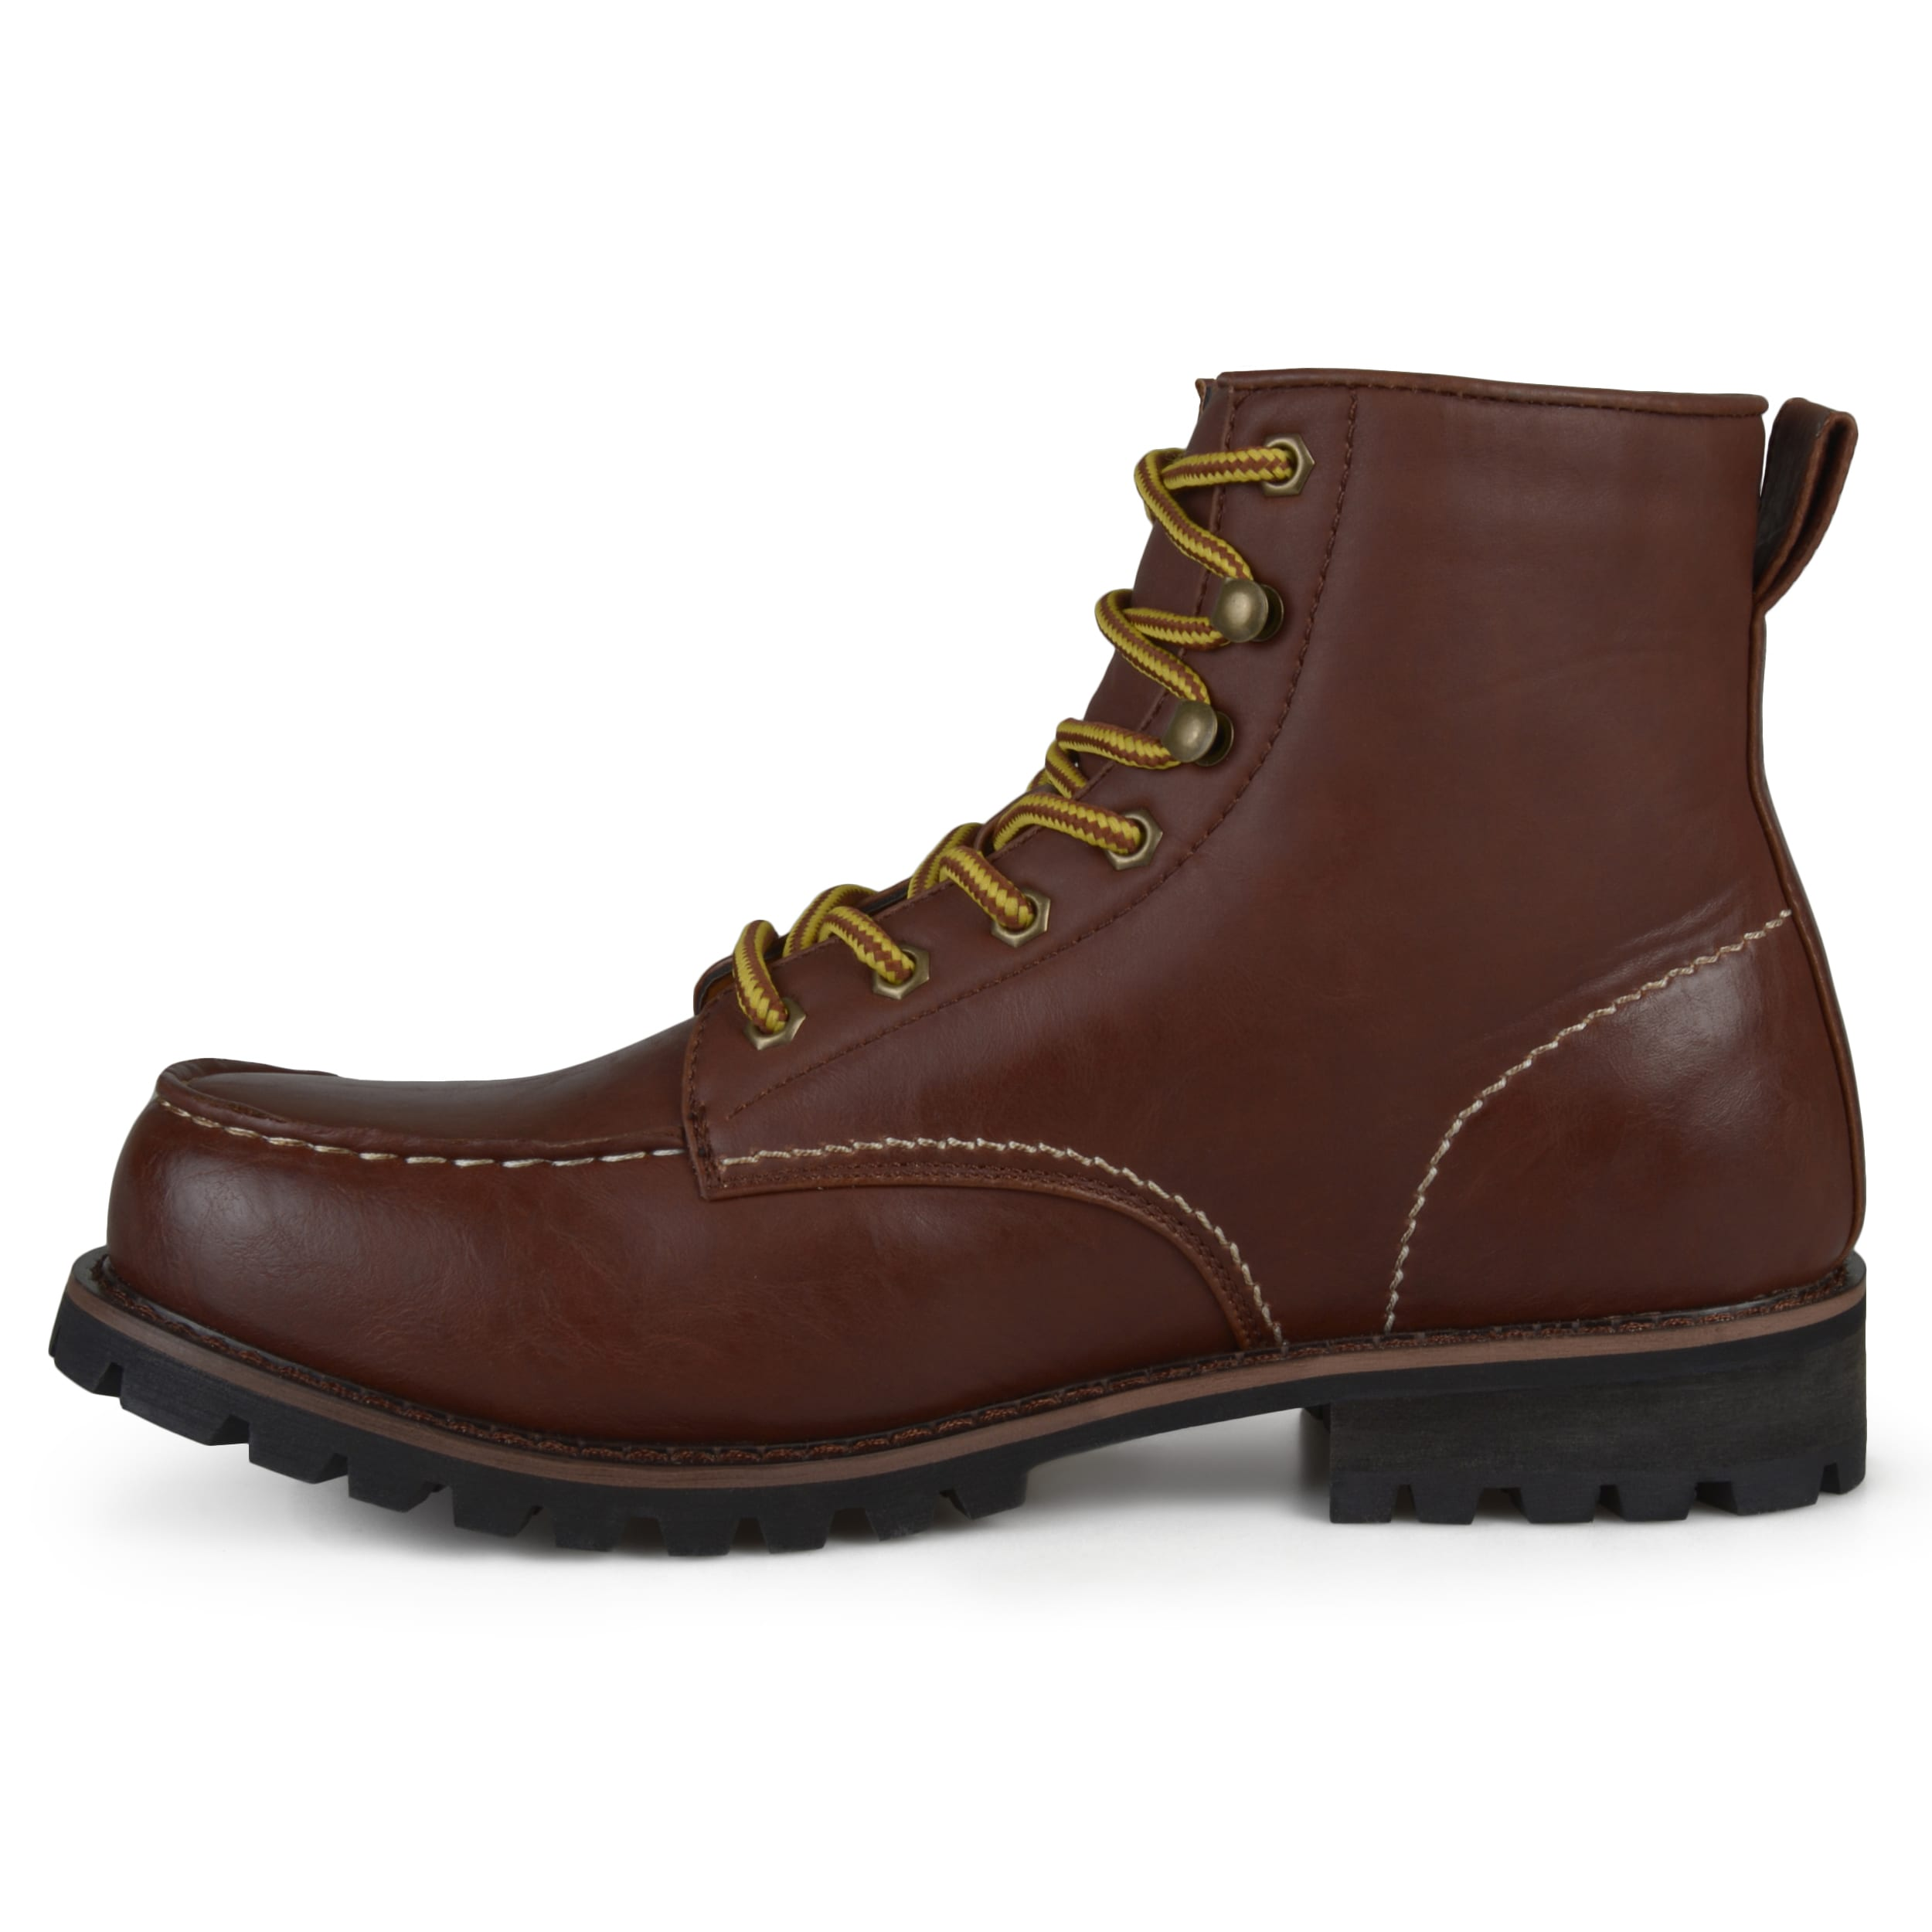 looking for online Vance Co. Carson Men's Work ... Boots discount big sale sneakernews for sale outlet store Locations i2SliRdtsn